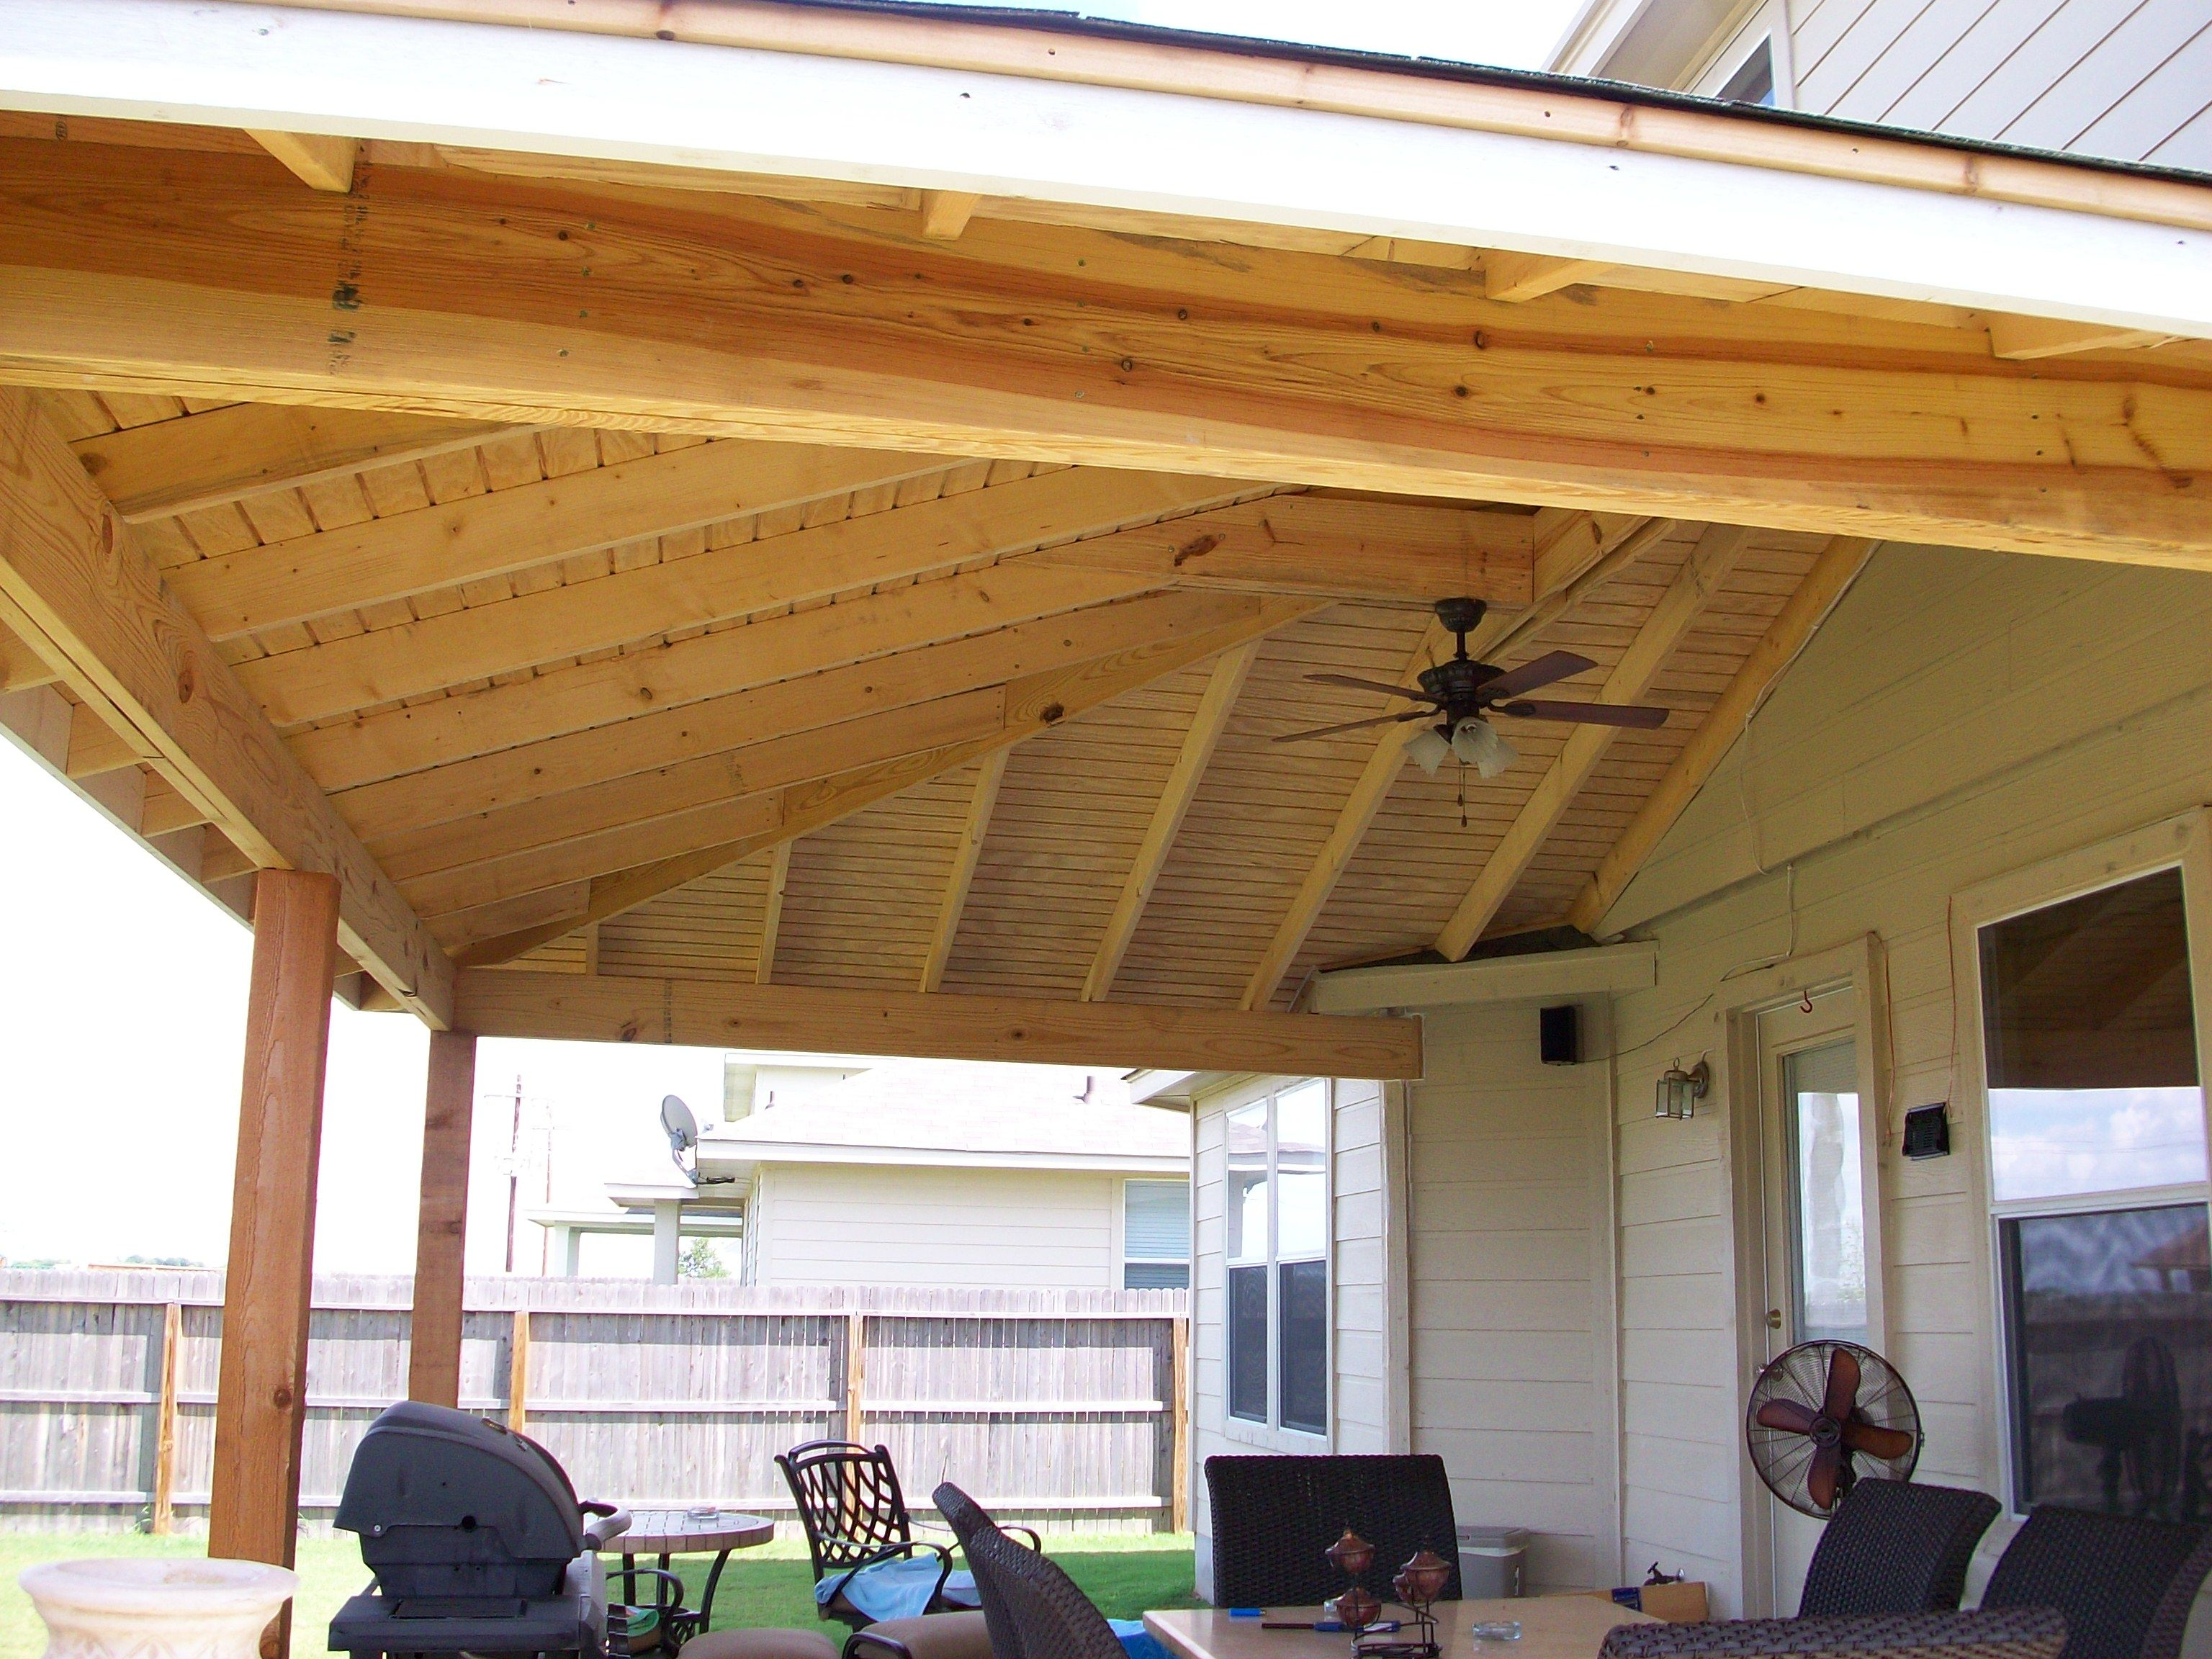 Roof Design Ideas: Roof Patio Cover Ideas